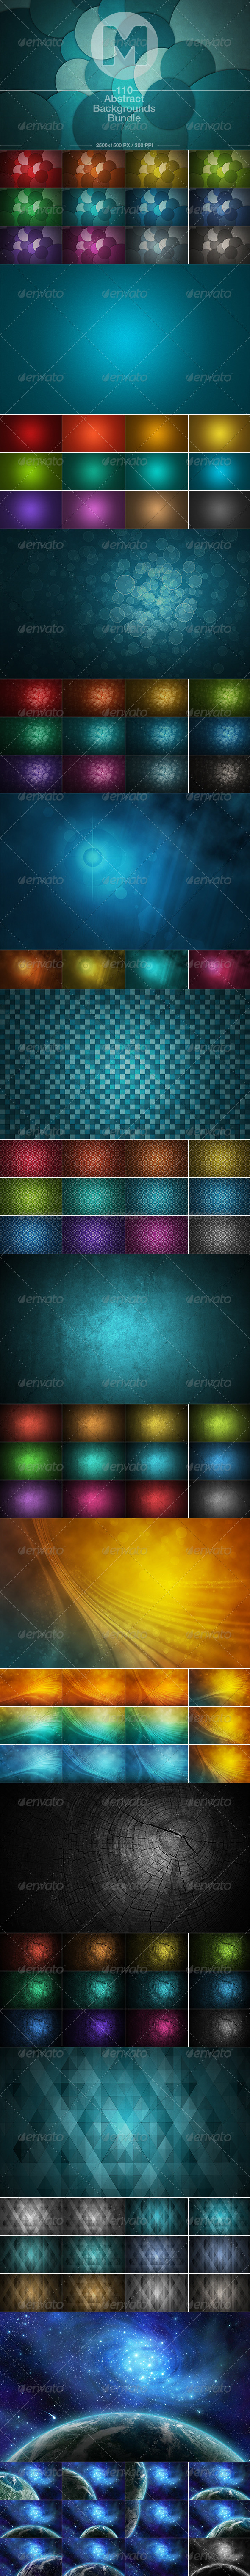 GraphicRiver 110 Abstract Backgrounds Bundle 7959920